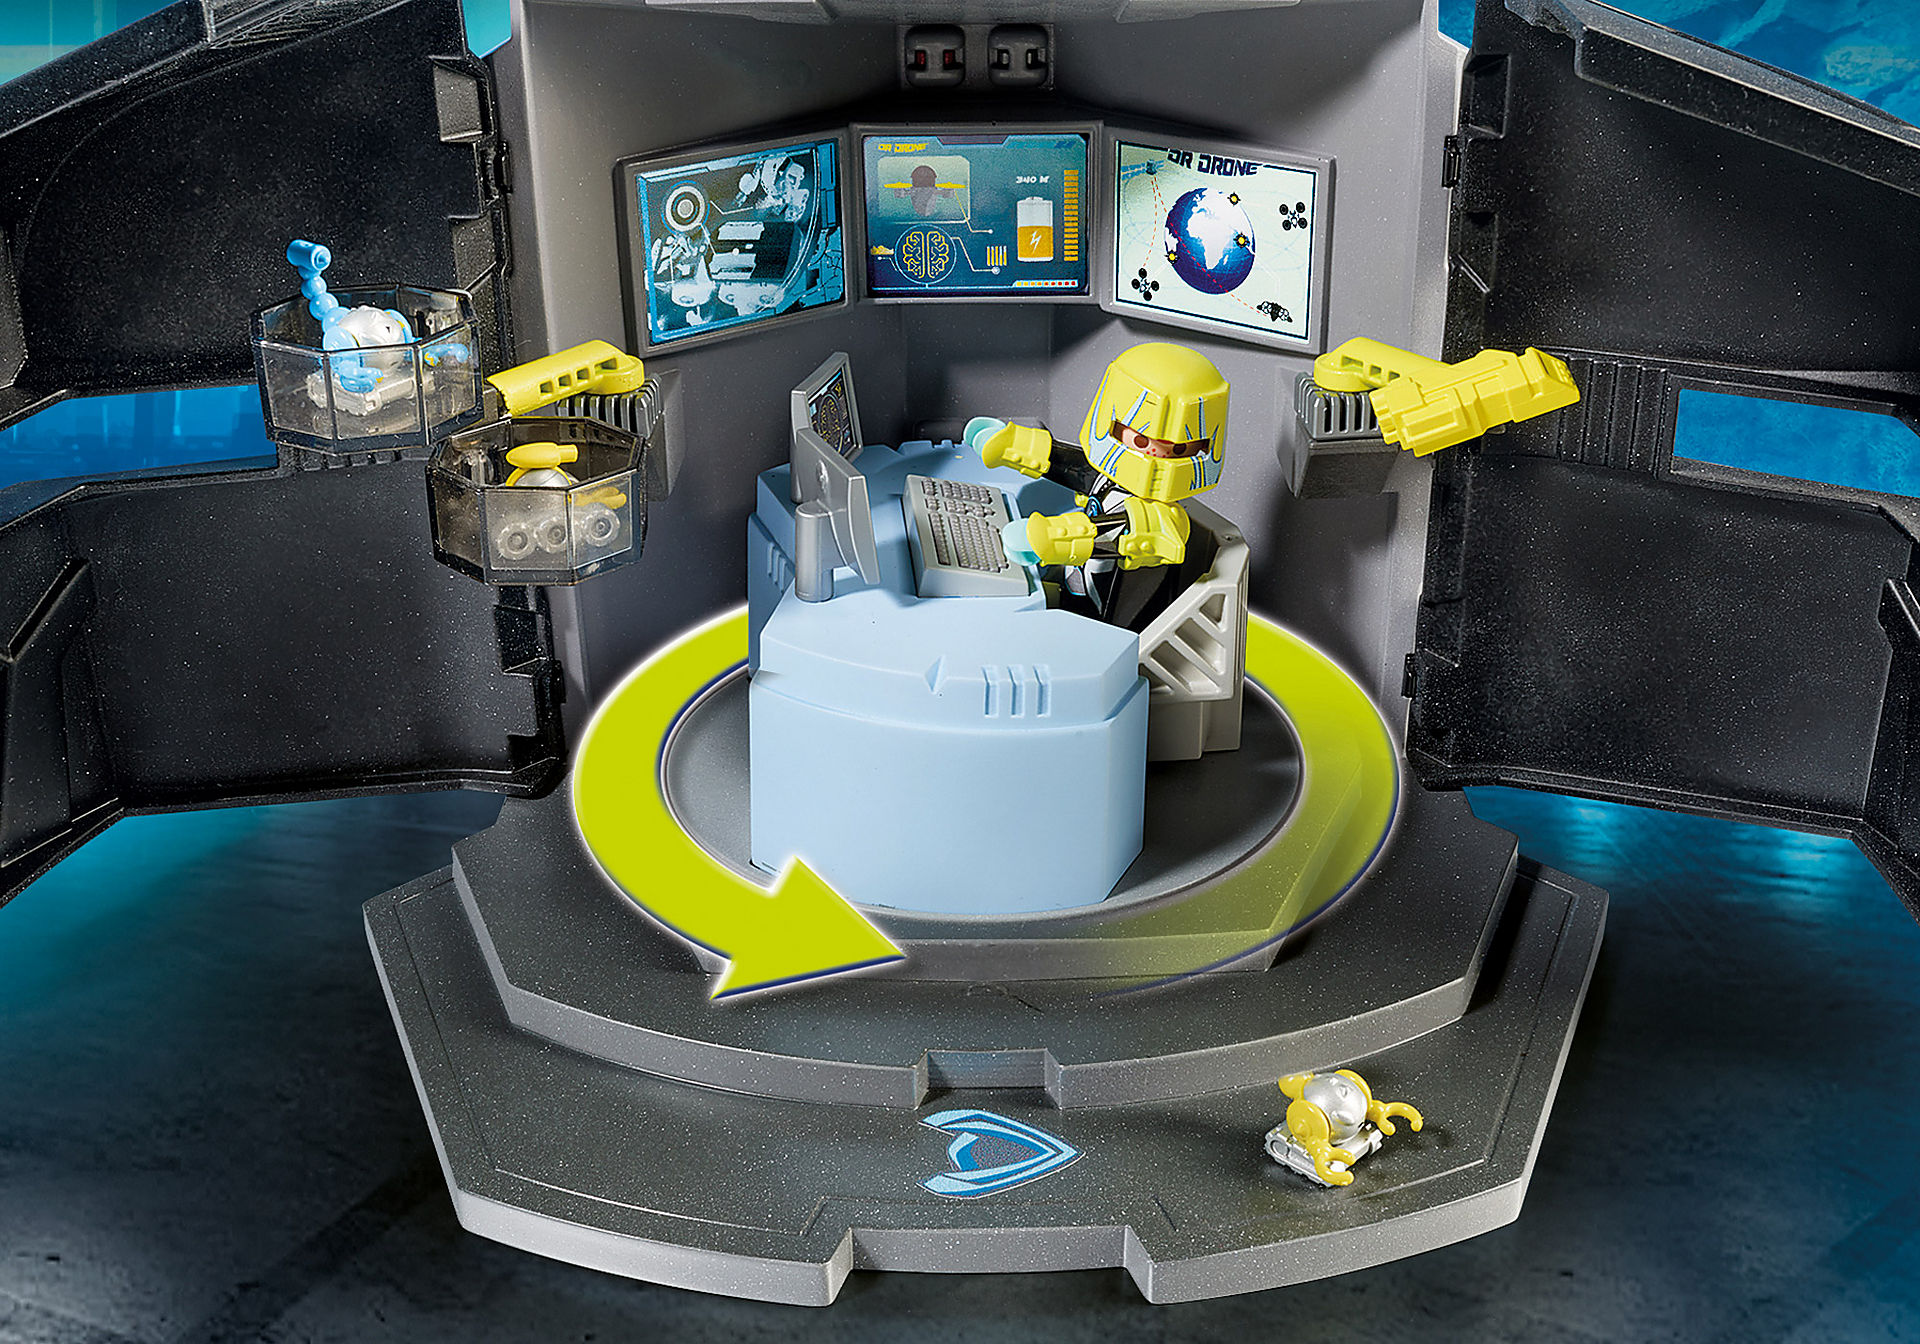 http://media.playmobil.com/i/playmobil/9250_product_extra1/Dr. Drone's Command Center